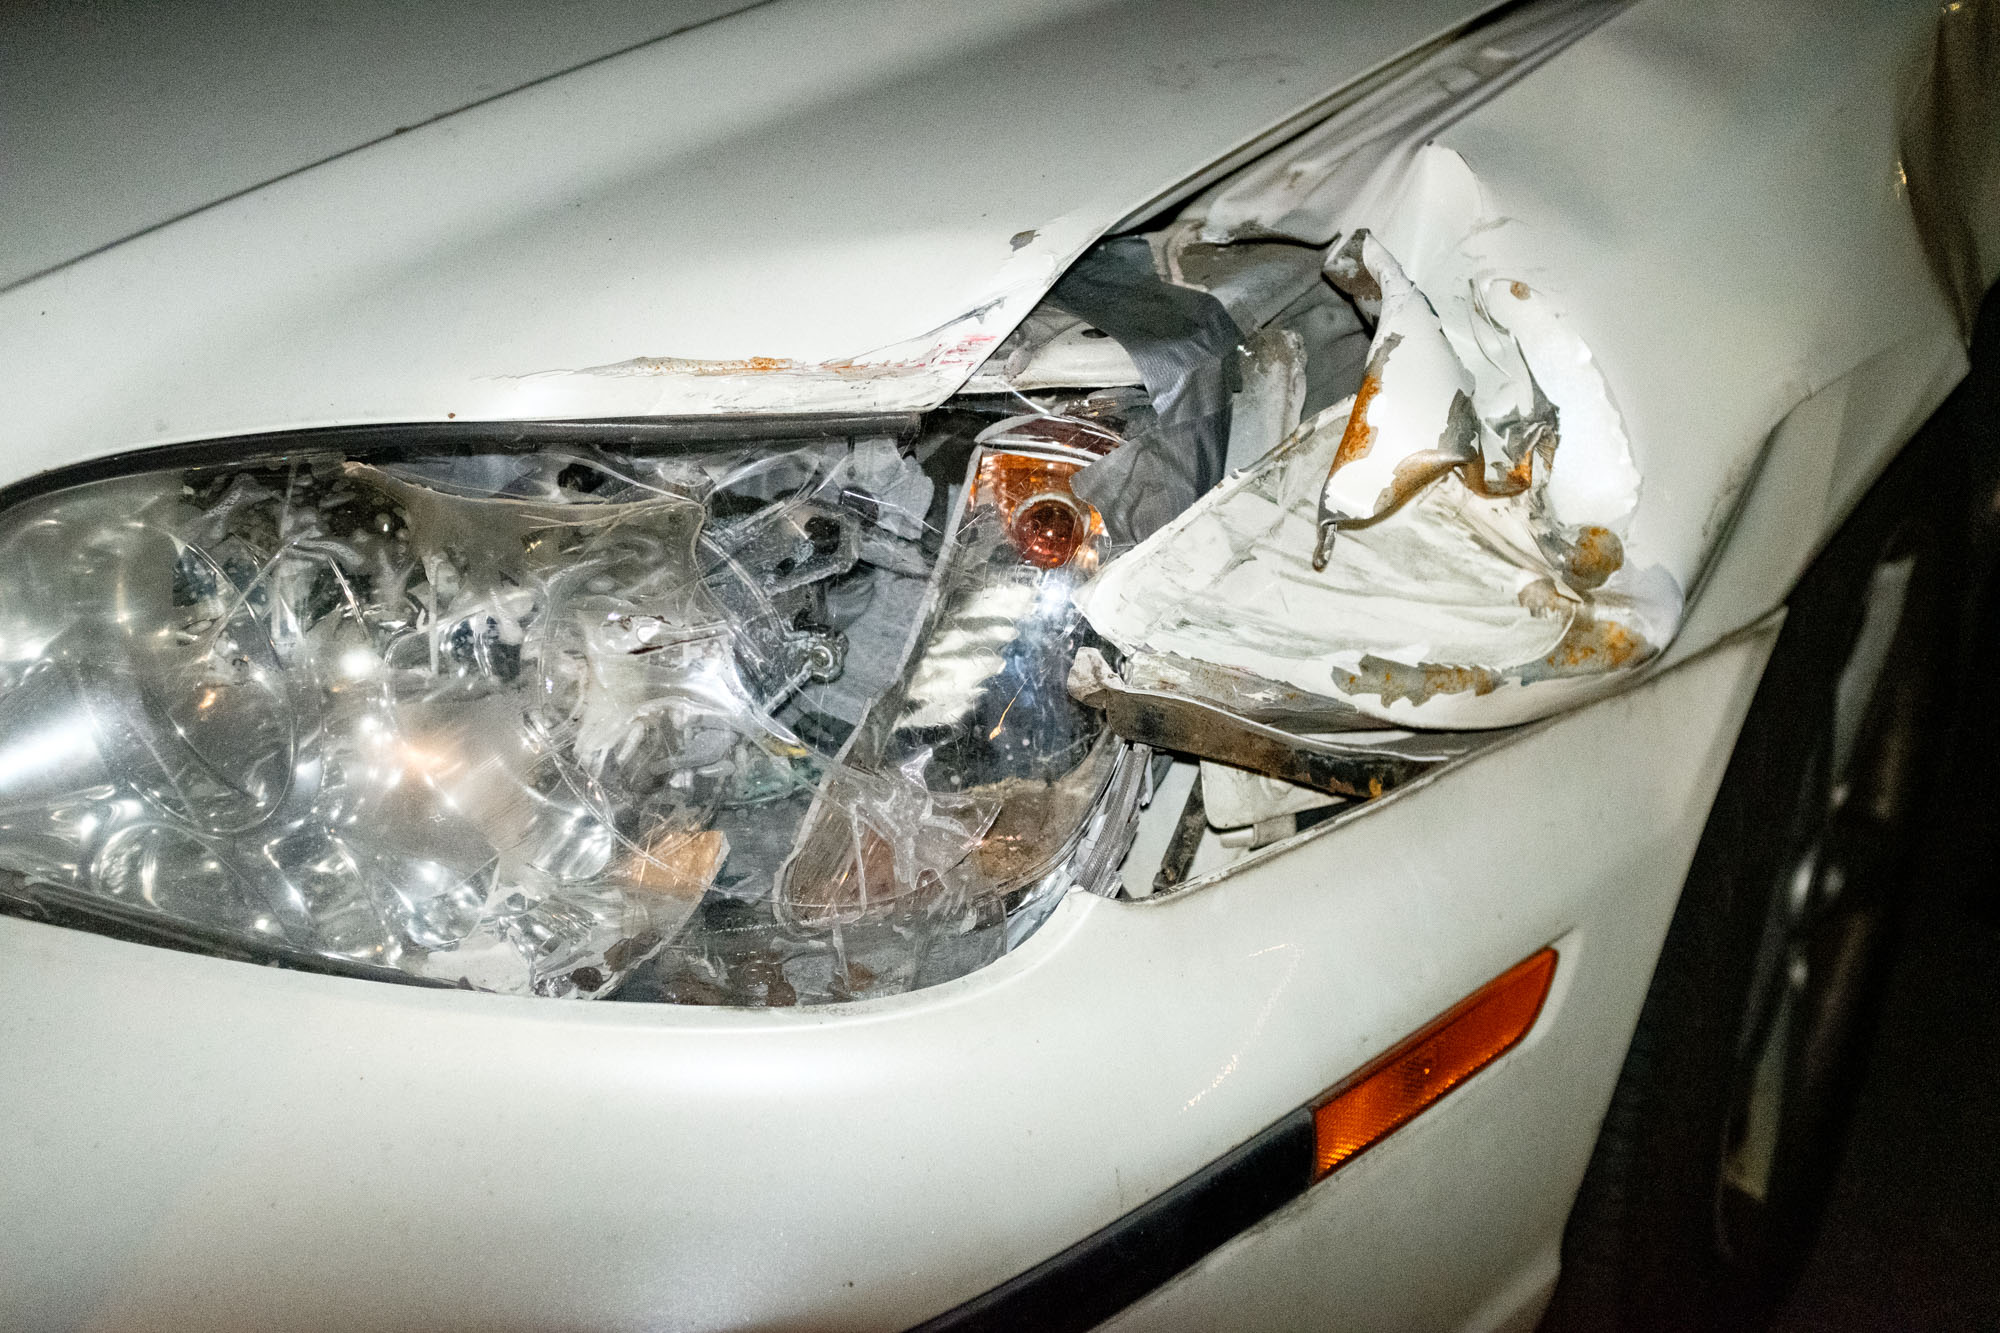 the smashed front headlight of a white sedan